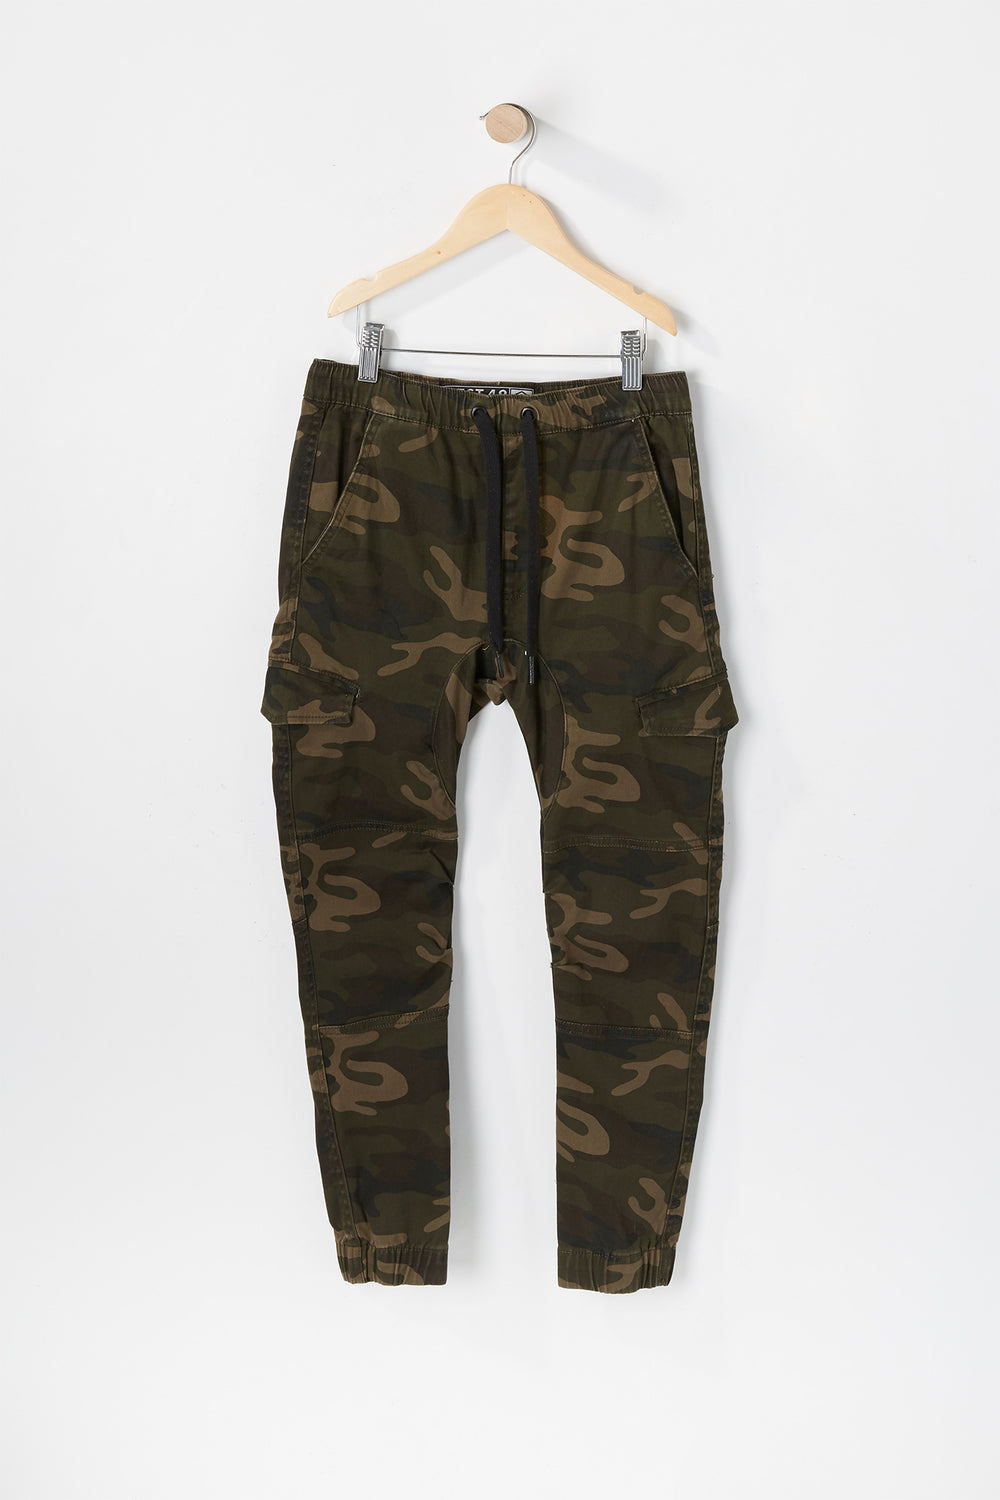 West49 Youth Camo Cargo Jogger Camouflage